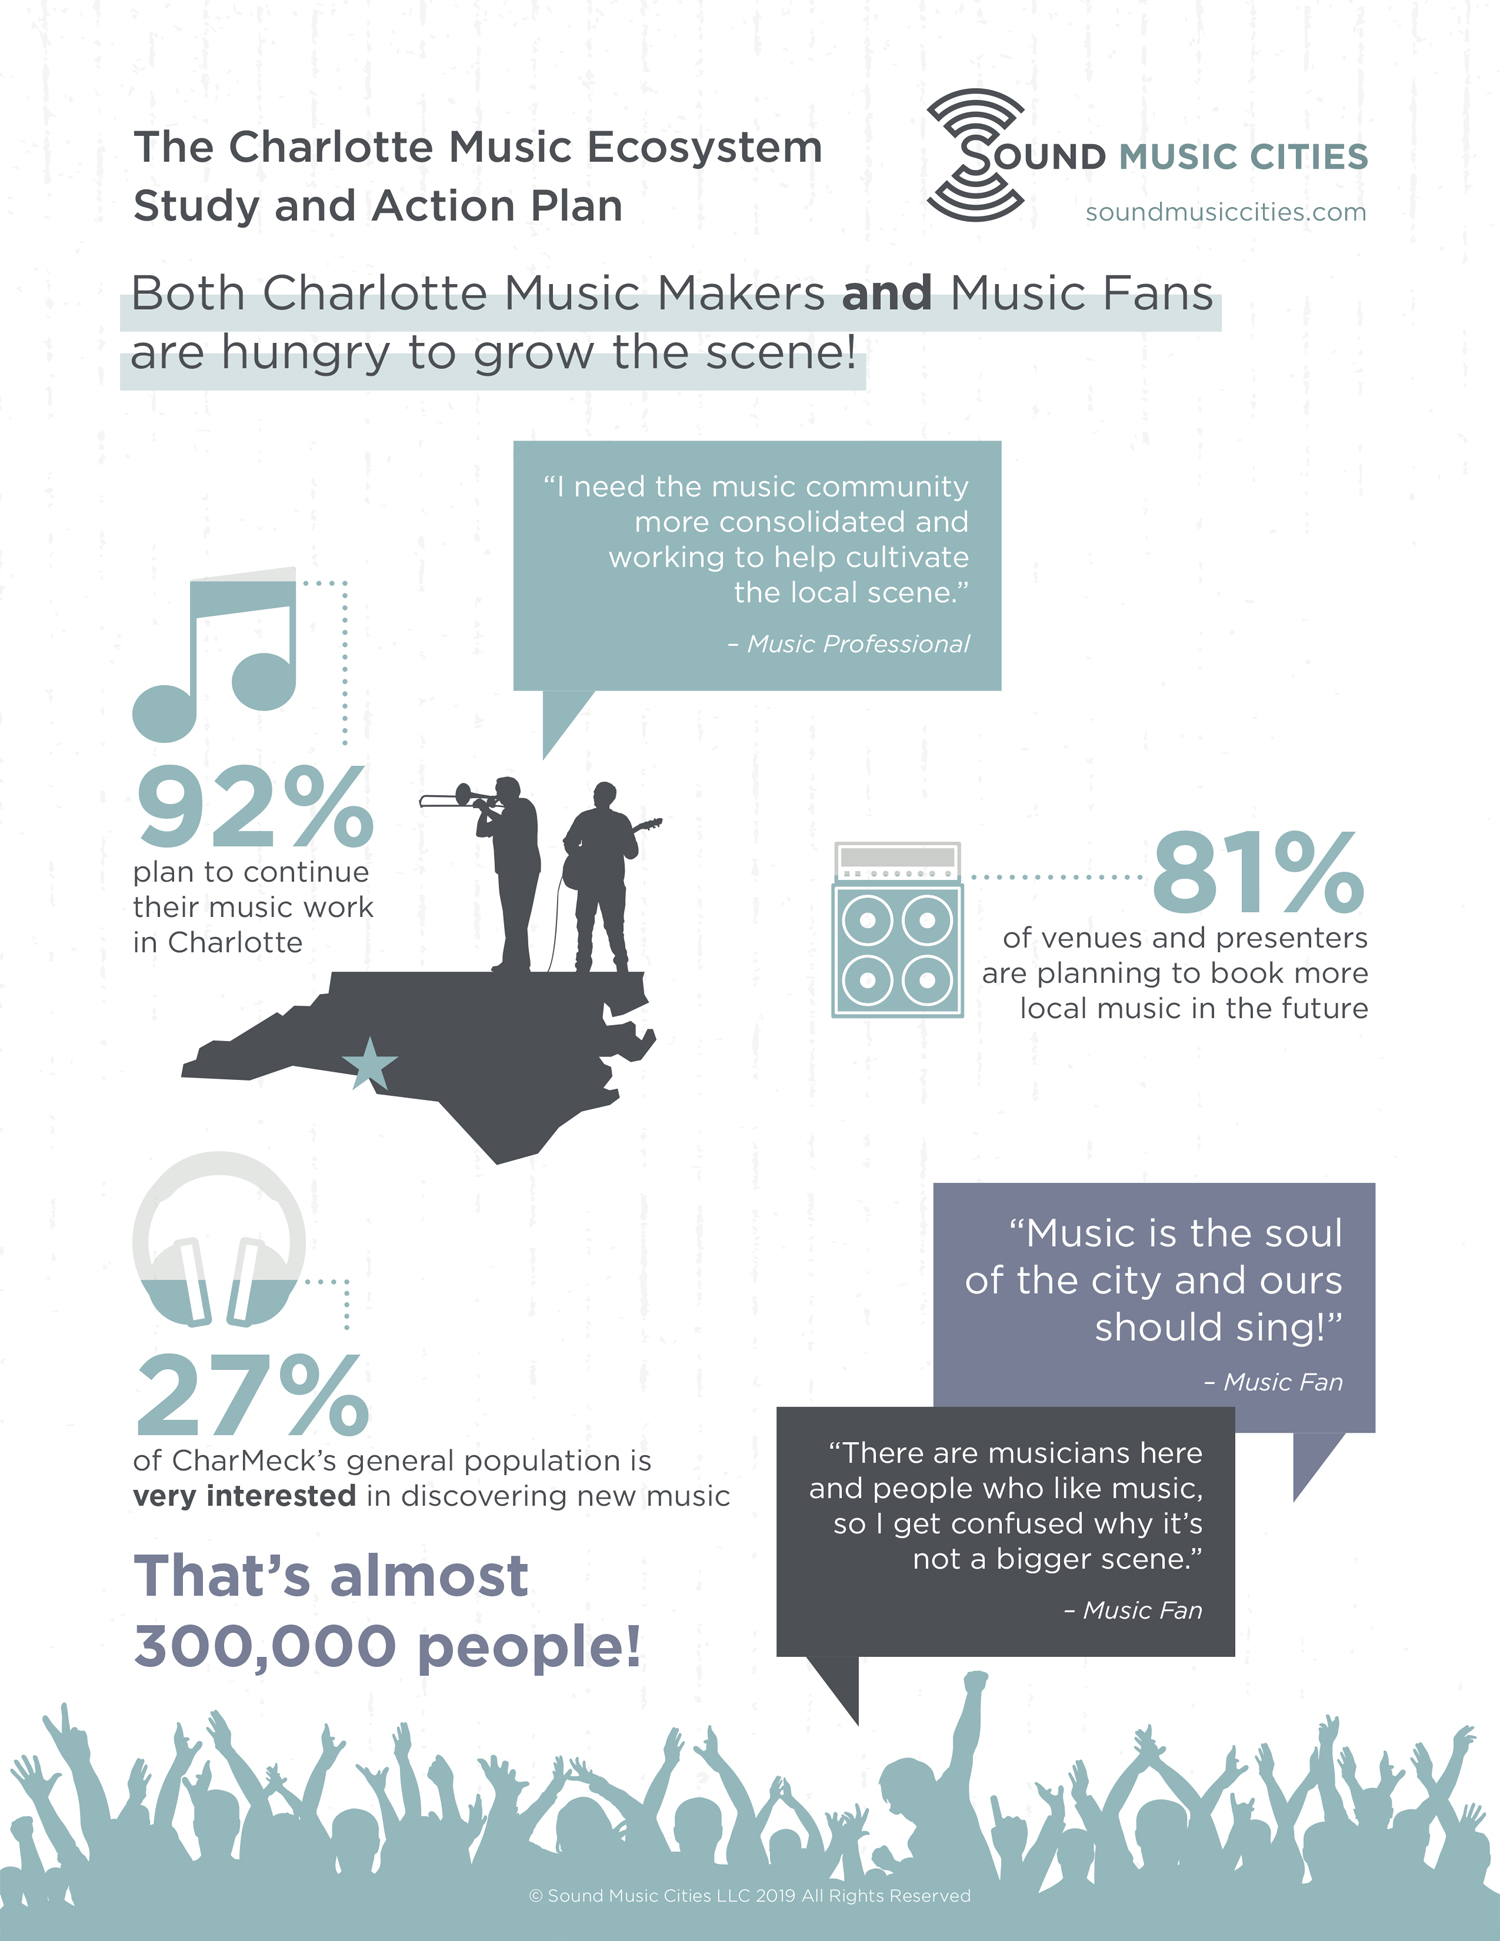 Infographic from the Charlotte Music Ecosystem Study and Action Plan by Sound Music Cities